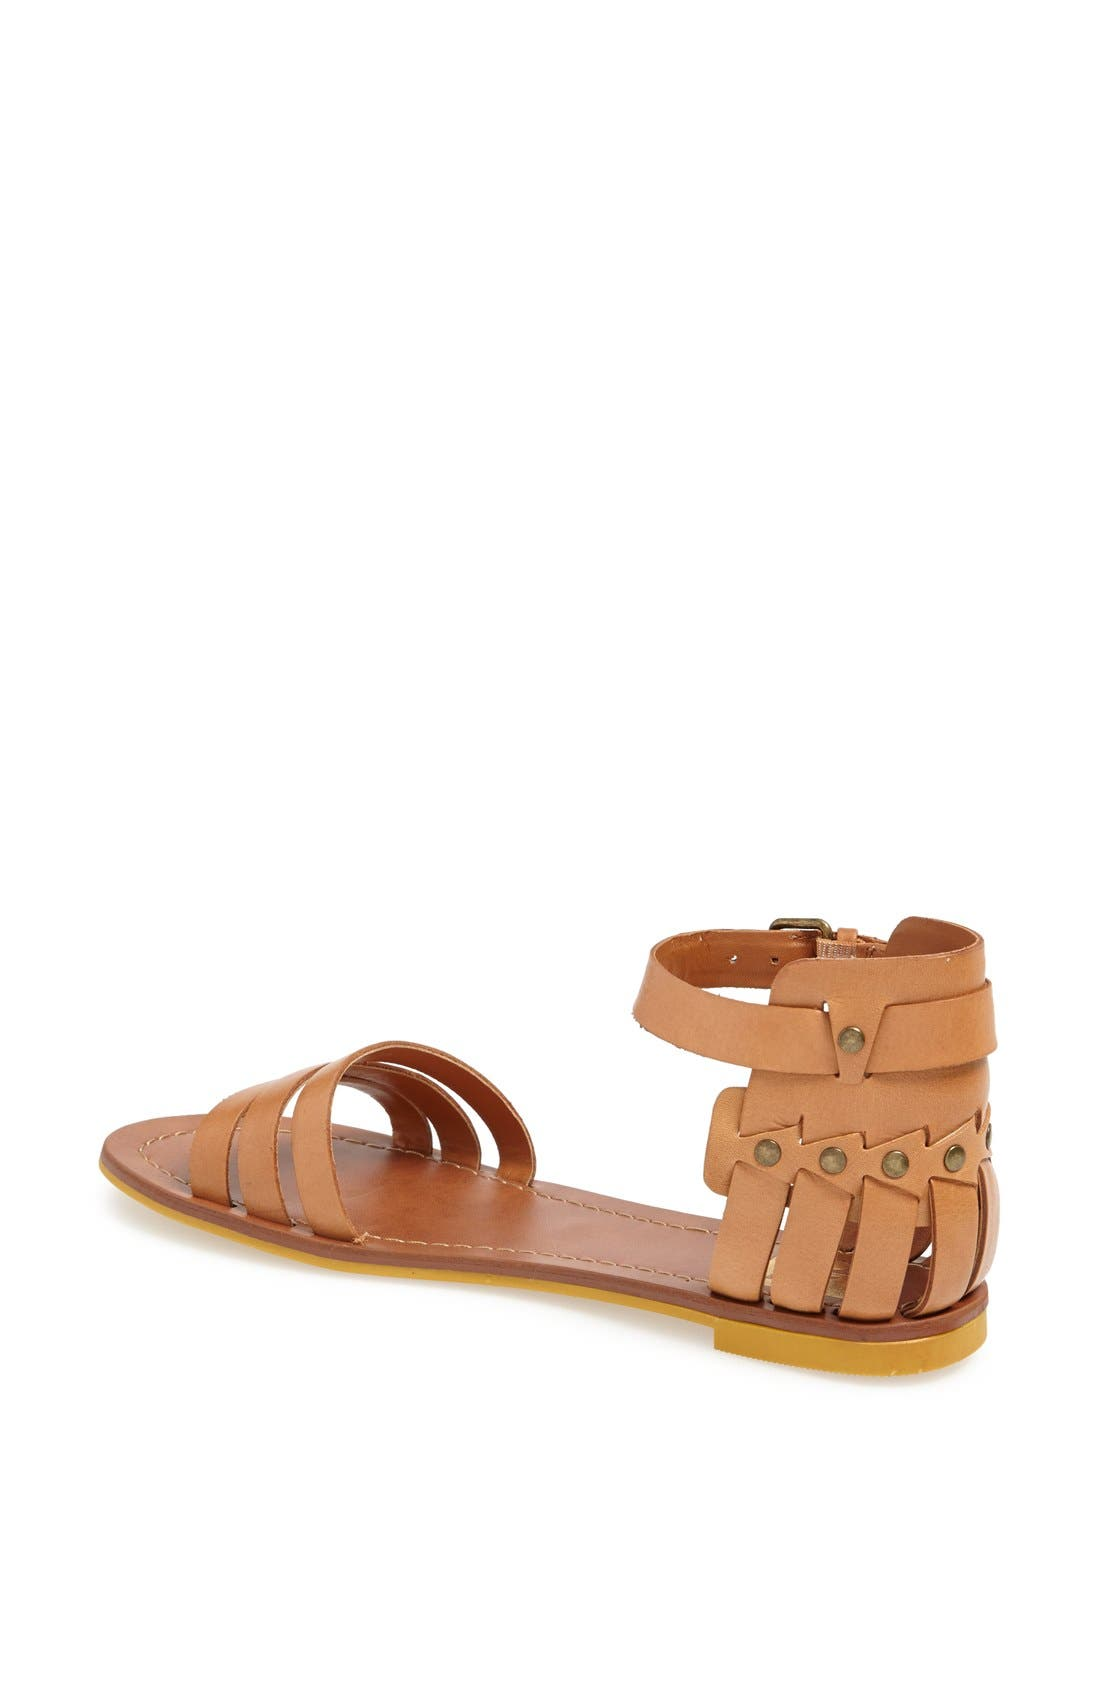 Alternate Image 2  - DV by Dolce Vita 'Daffodil' Sandal